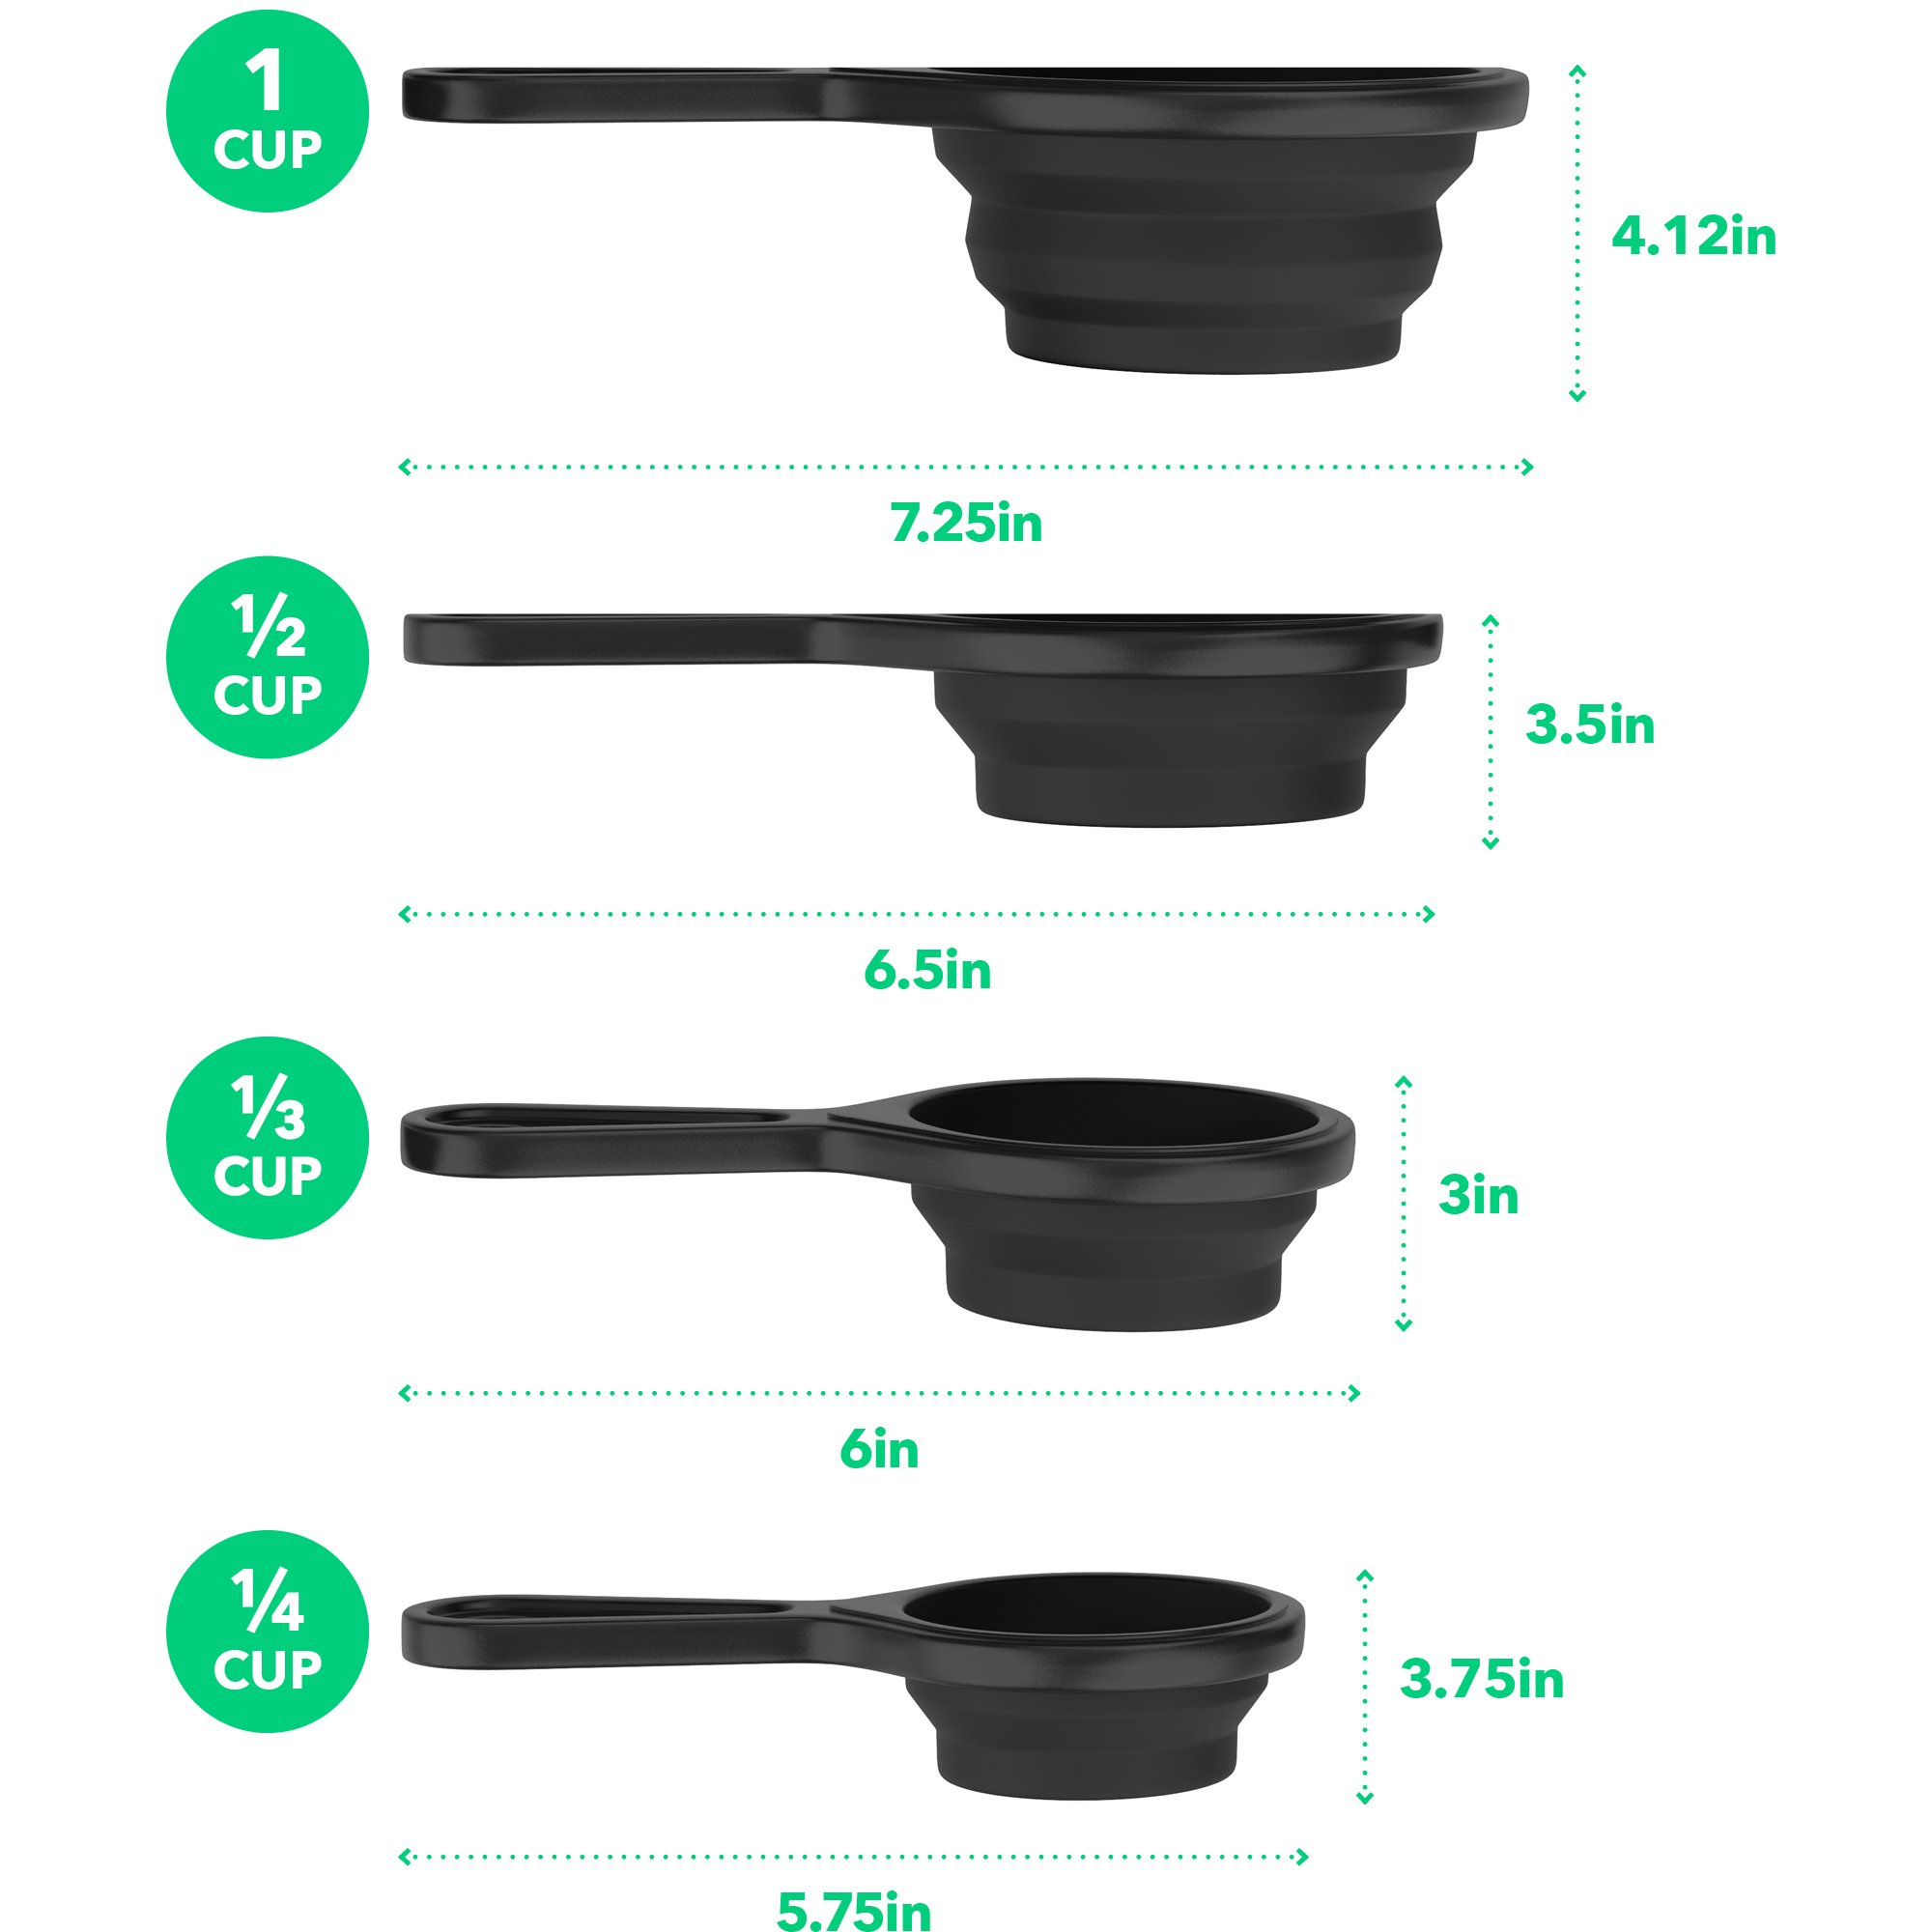 Vremi 15 Piece Kitchen Gadgets Set - 5 pc Cooking Utensils 4 pc Measuring Cups with Whisk Can Opener Pizza Cutter Cheese Grater Ice Cream Scoop Veggie Peeler - Small Prep Tools for Camping or Travel by Vremi (Image #7)